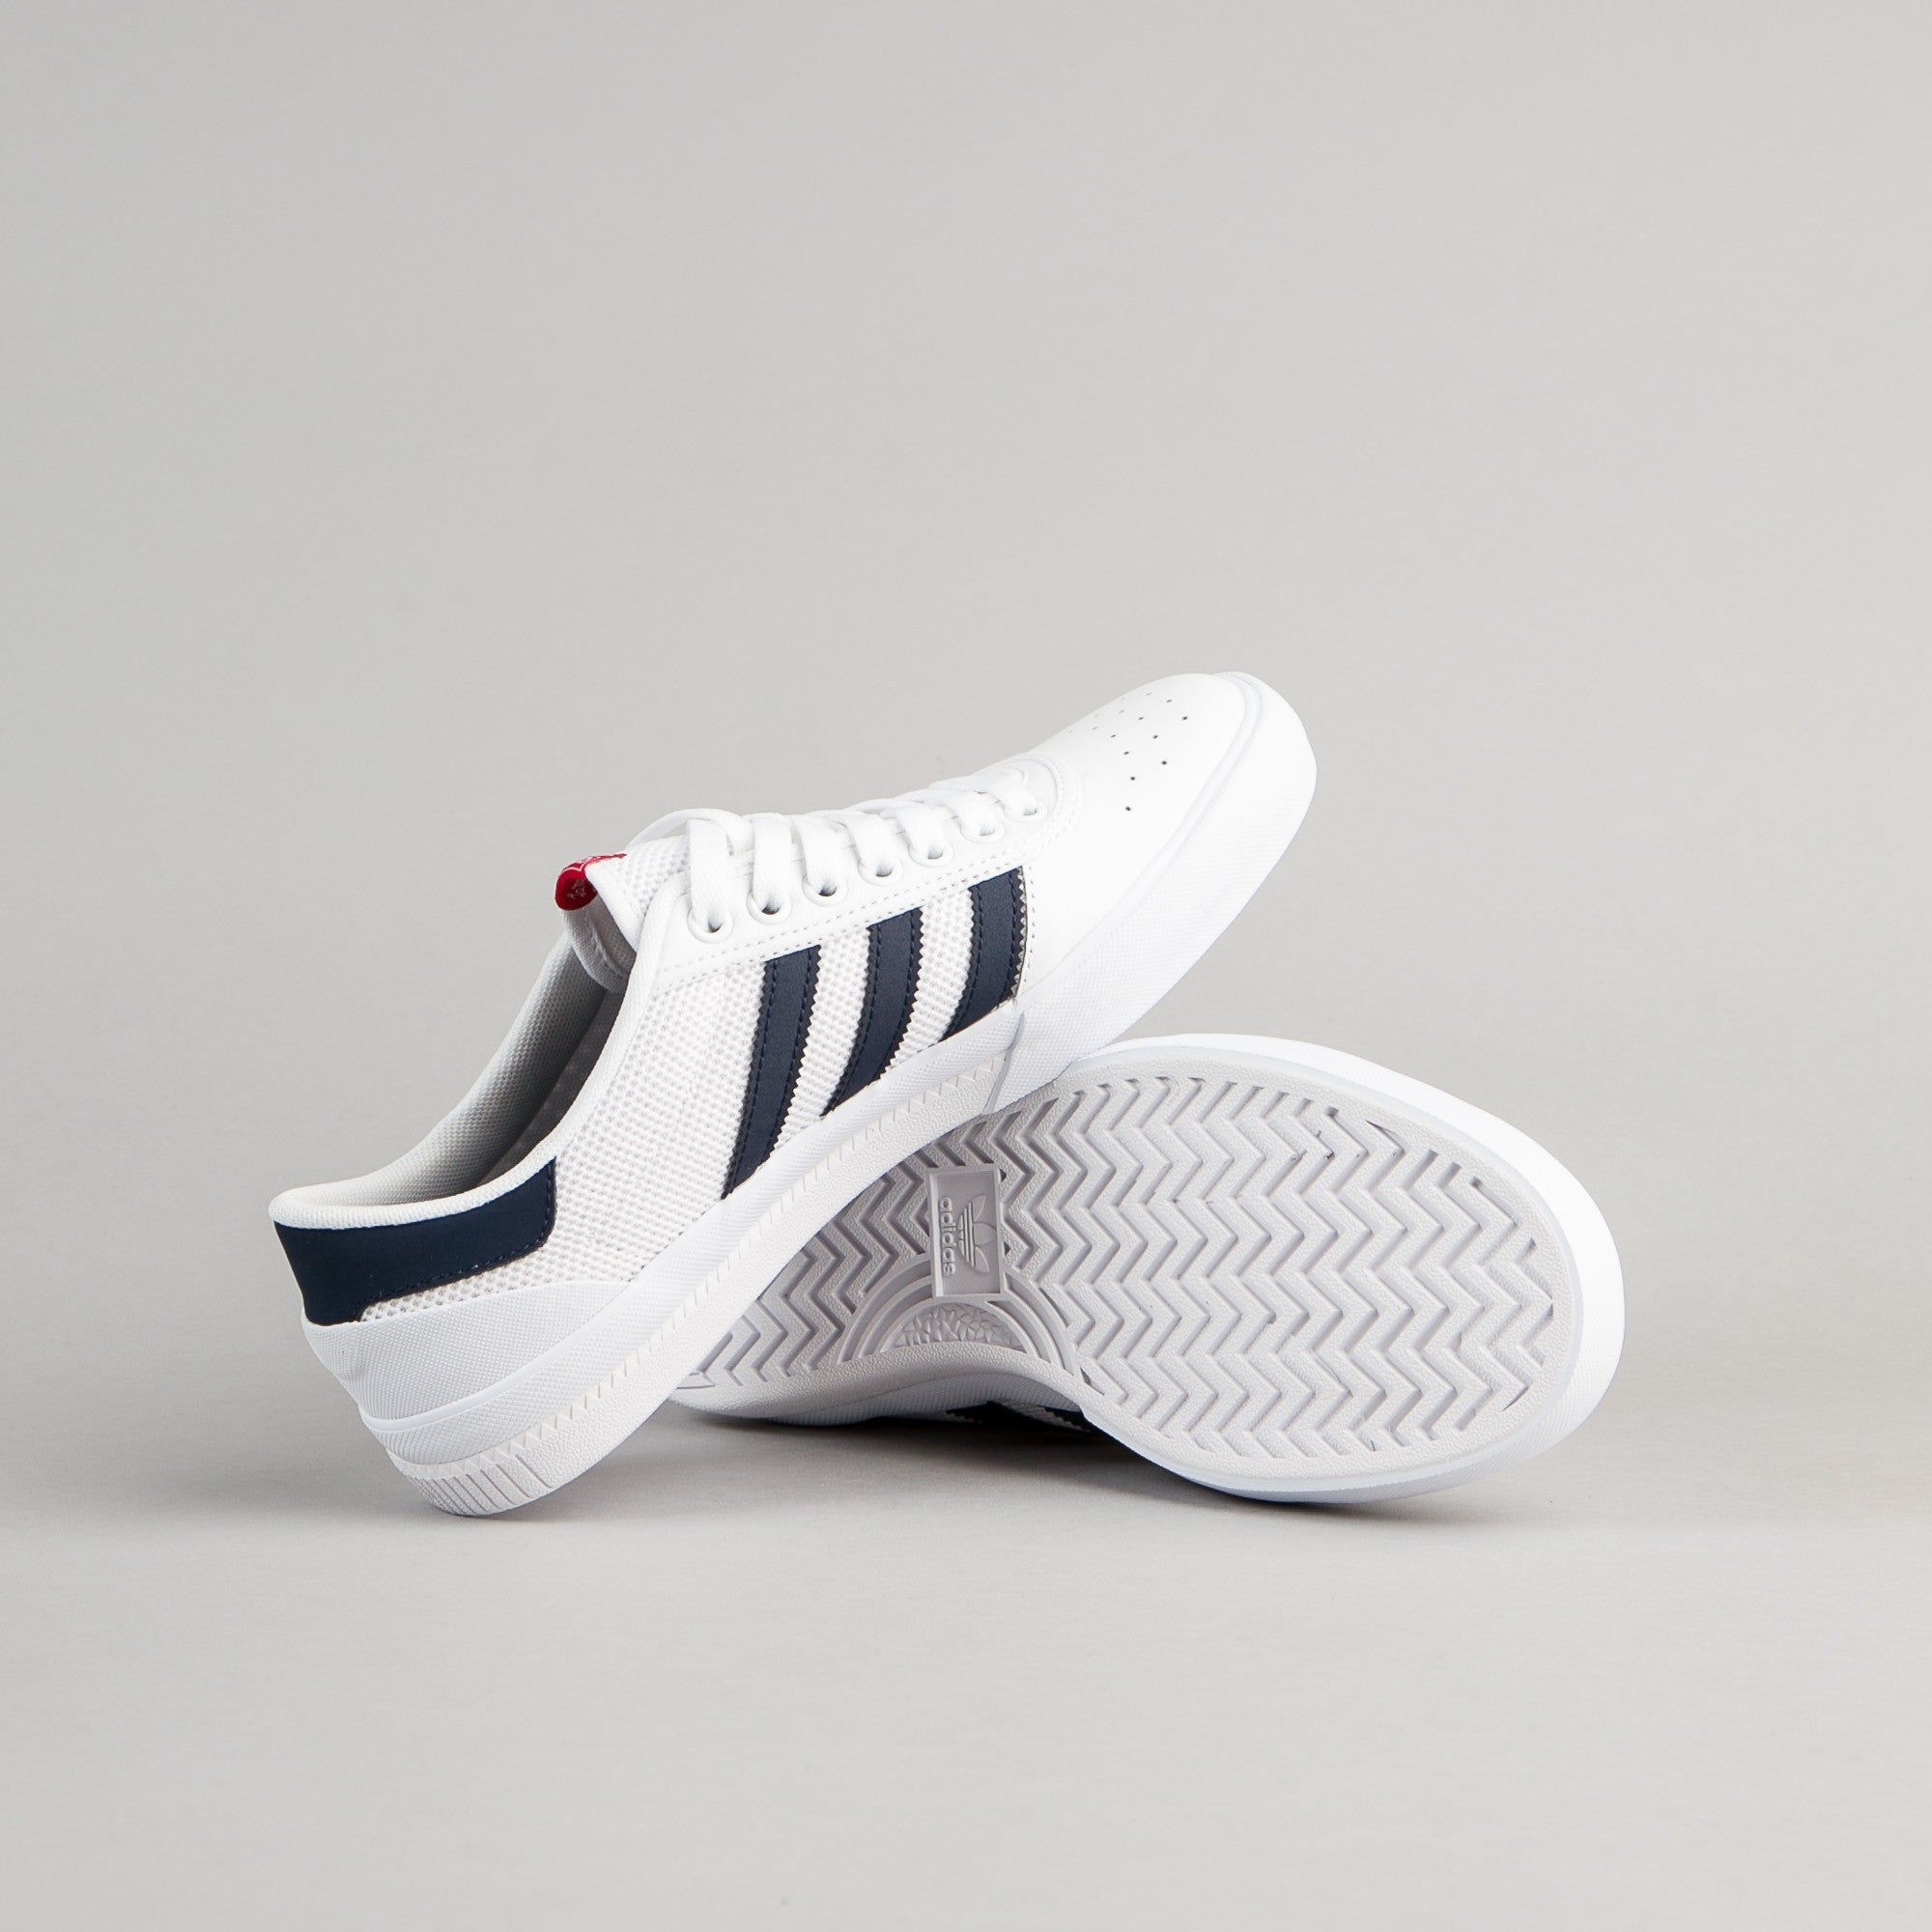 Adidas Lucas Premiere ADV Shoes - White / Collegiate Navy / Scarlet